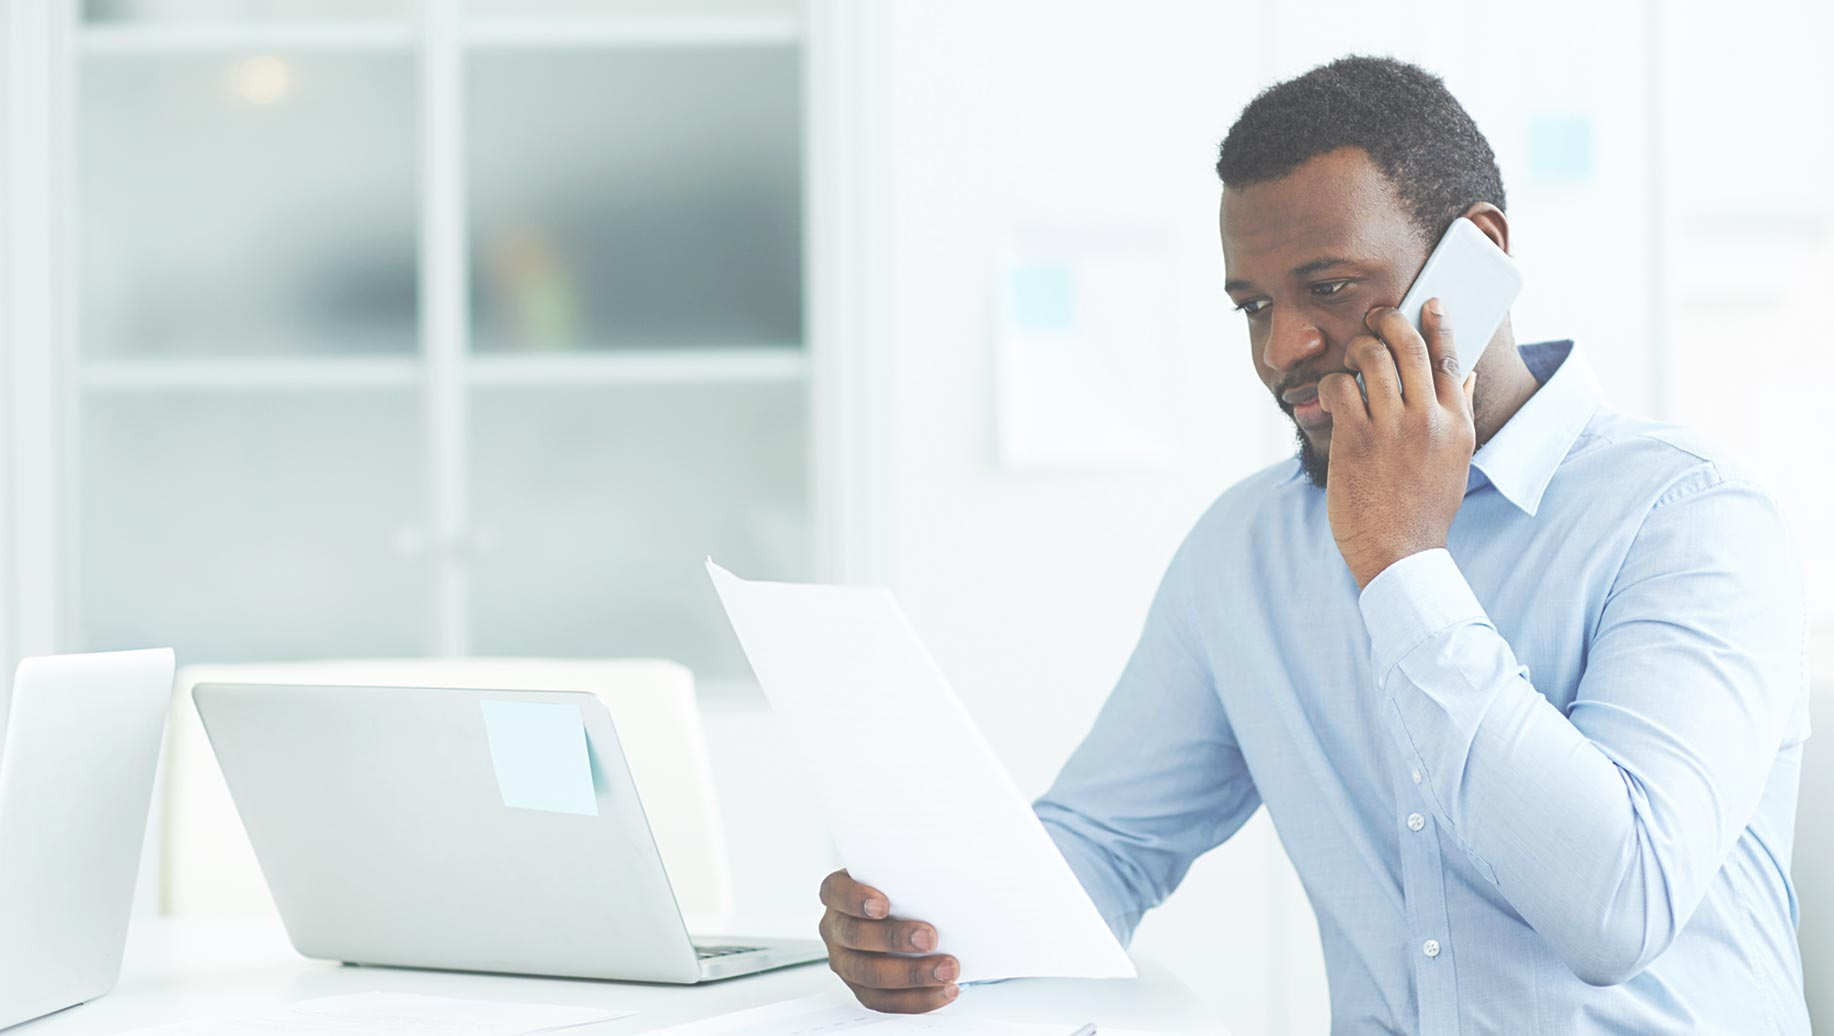 You Don't Need A Life Insurance Sales Pitch: Do This Instead